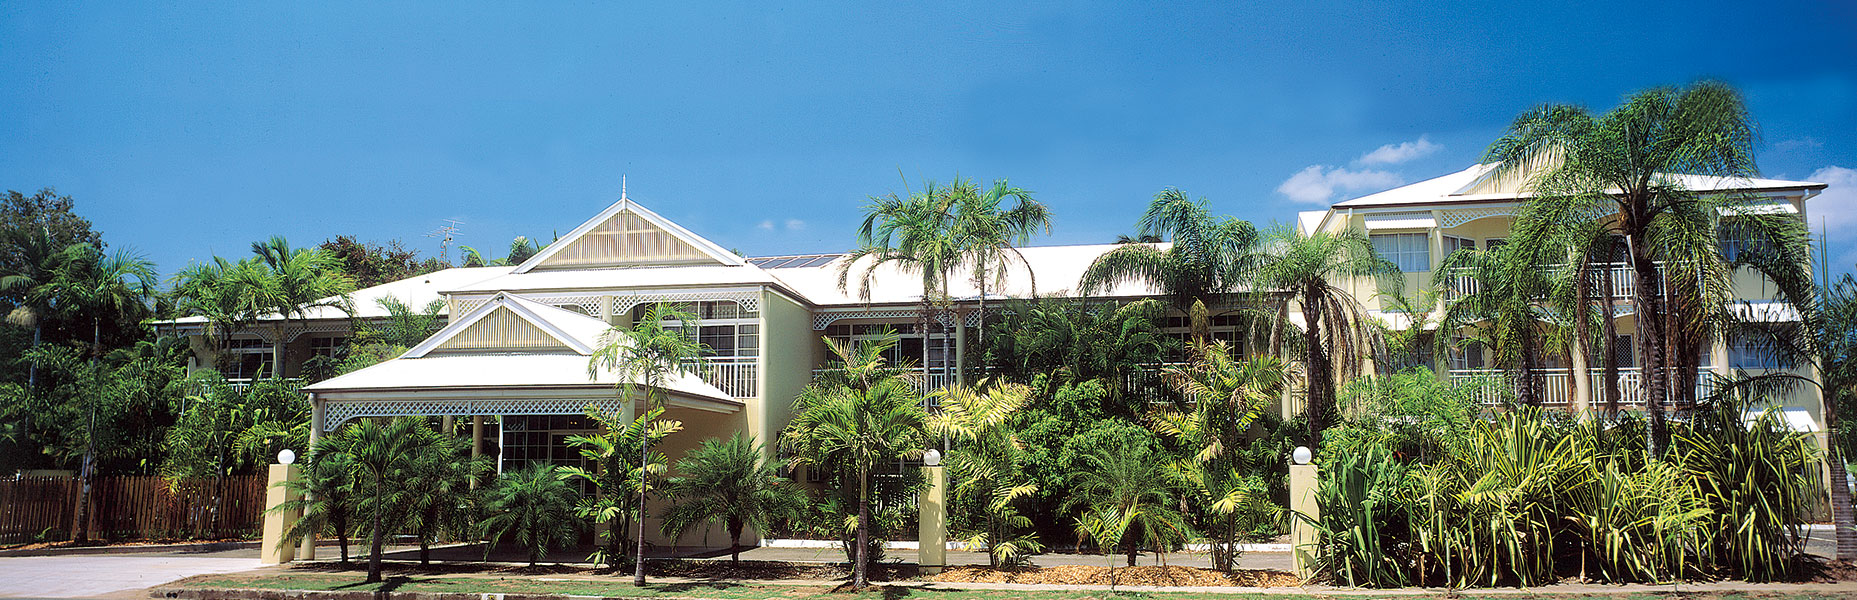 Cairns Reef Apartments